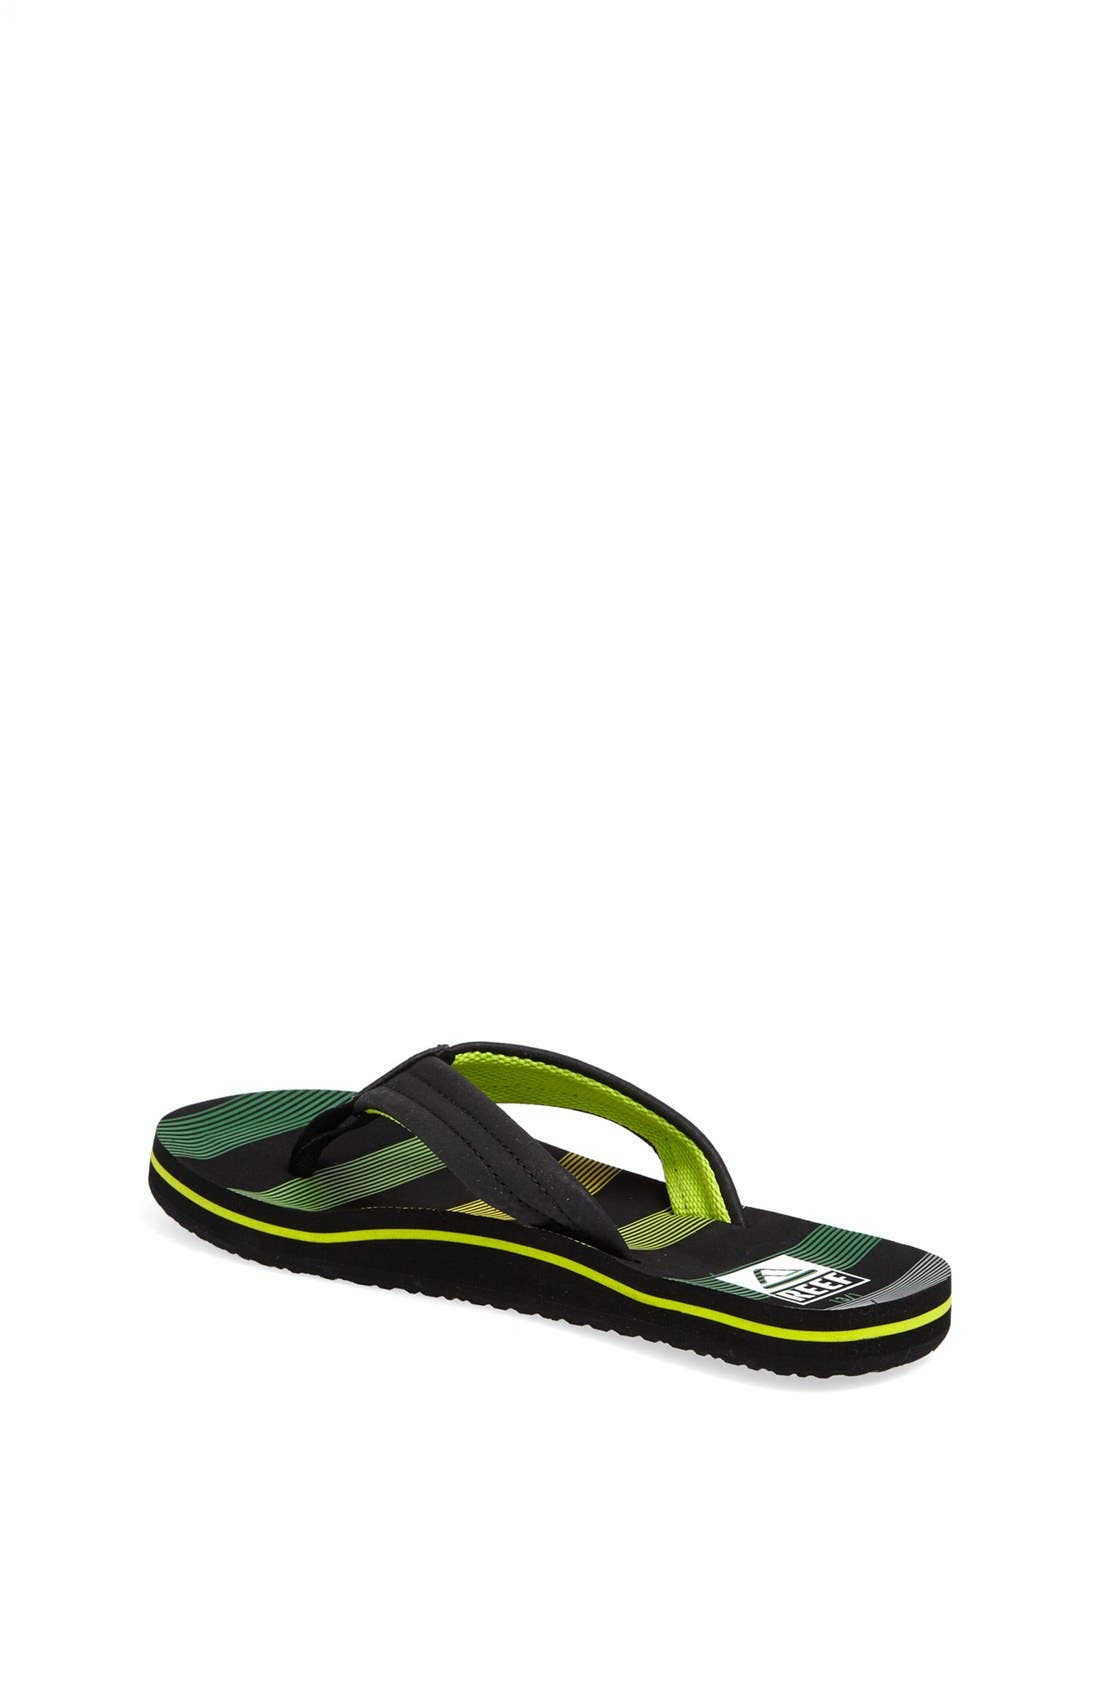 Alternate Image 2  - Reef 'Ahi' Sandal (Baby, Walker, Toddler, Little Kid & Big Kid)